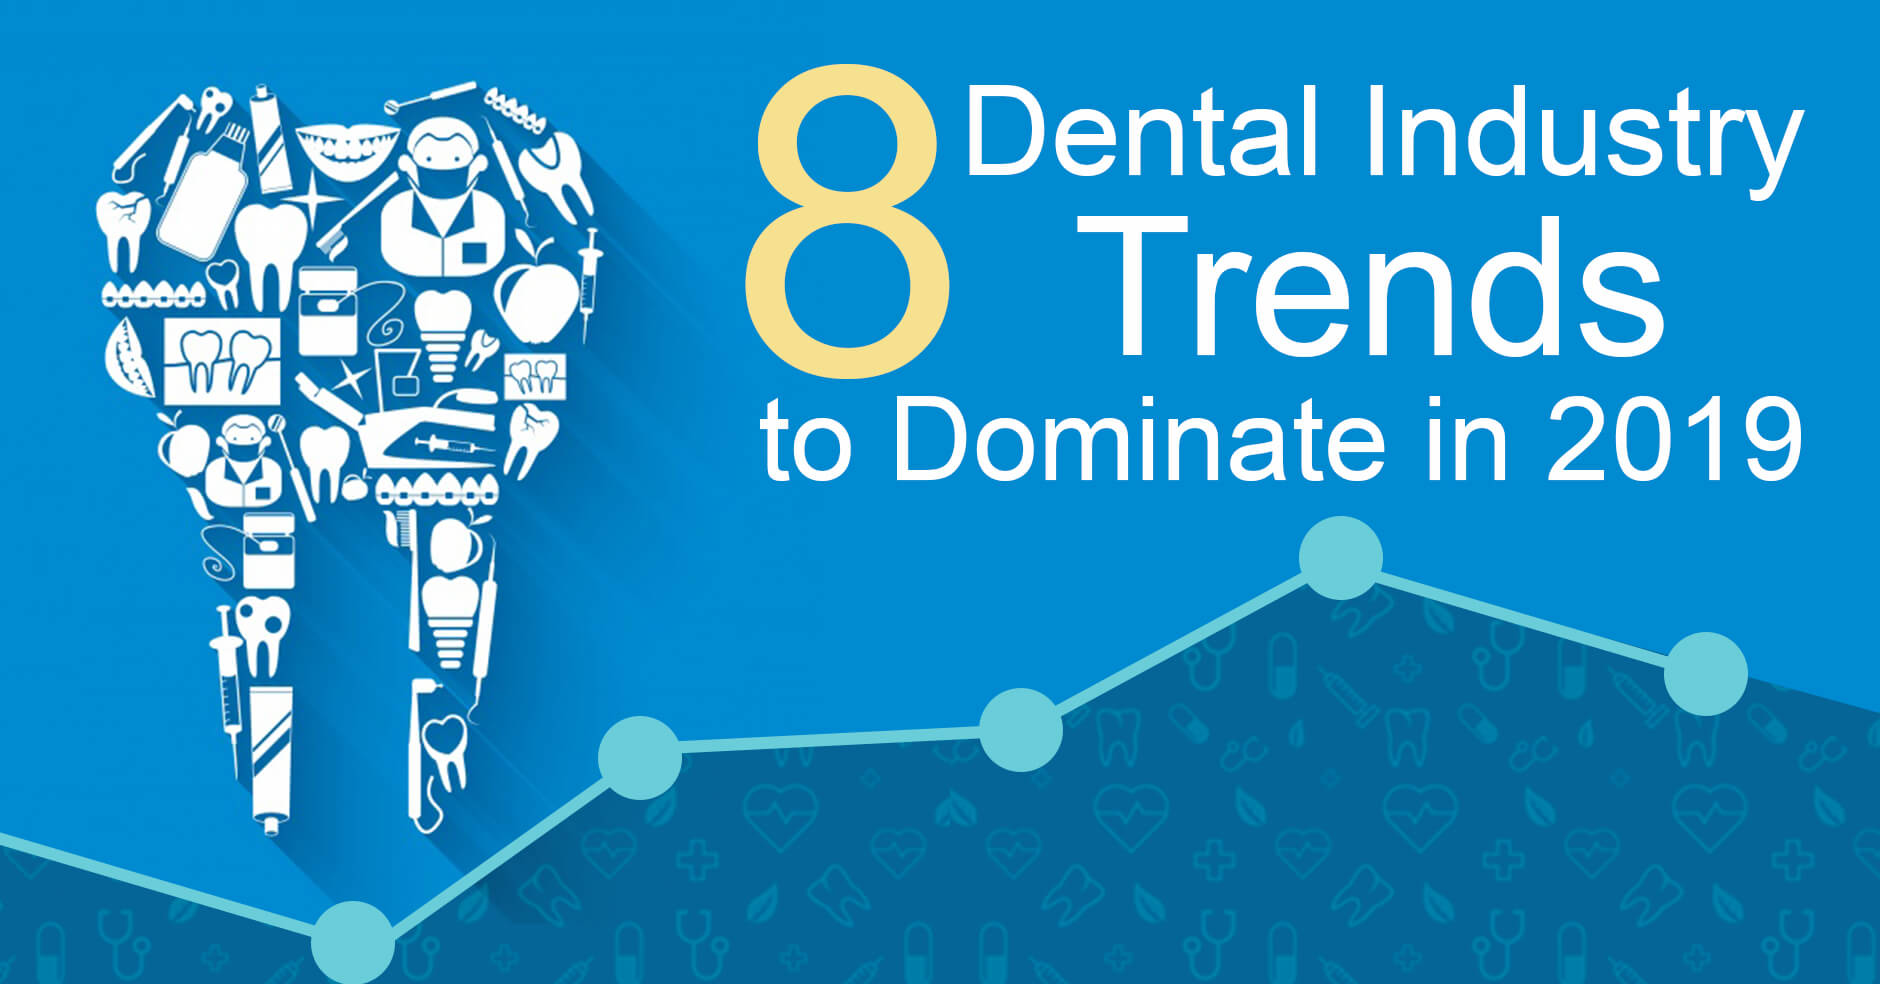 8 Dental Industry Trends to Dominate in 2019